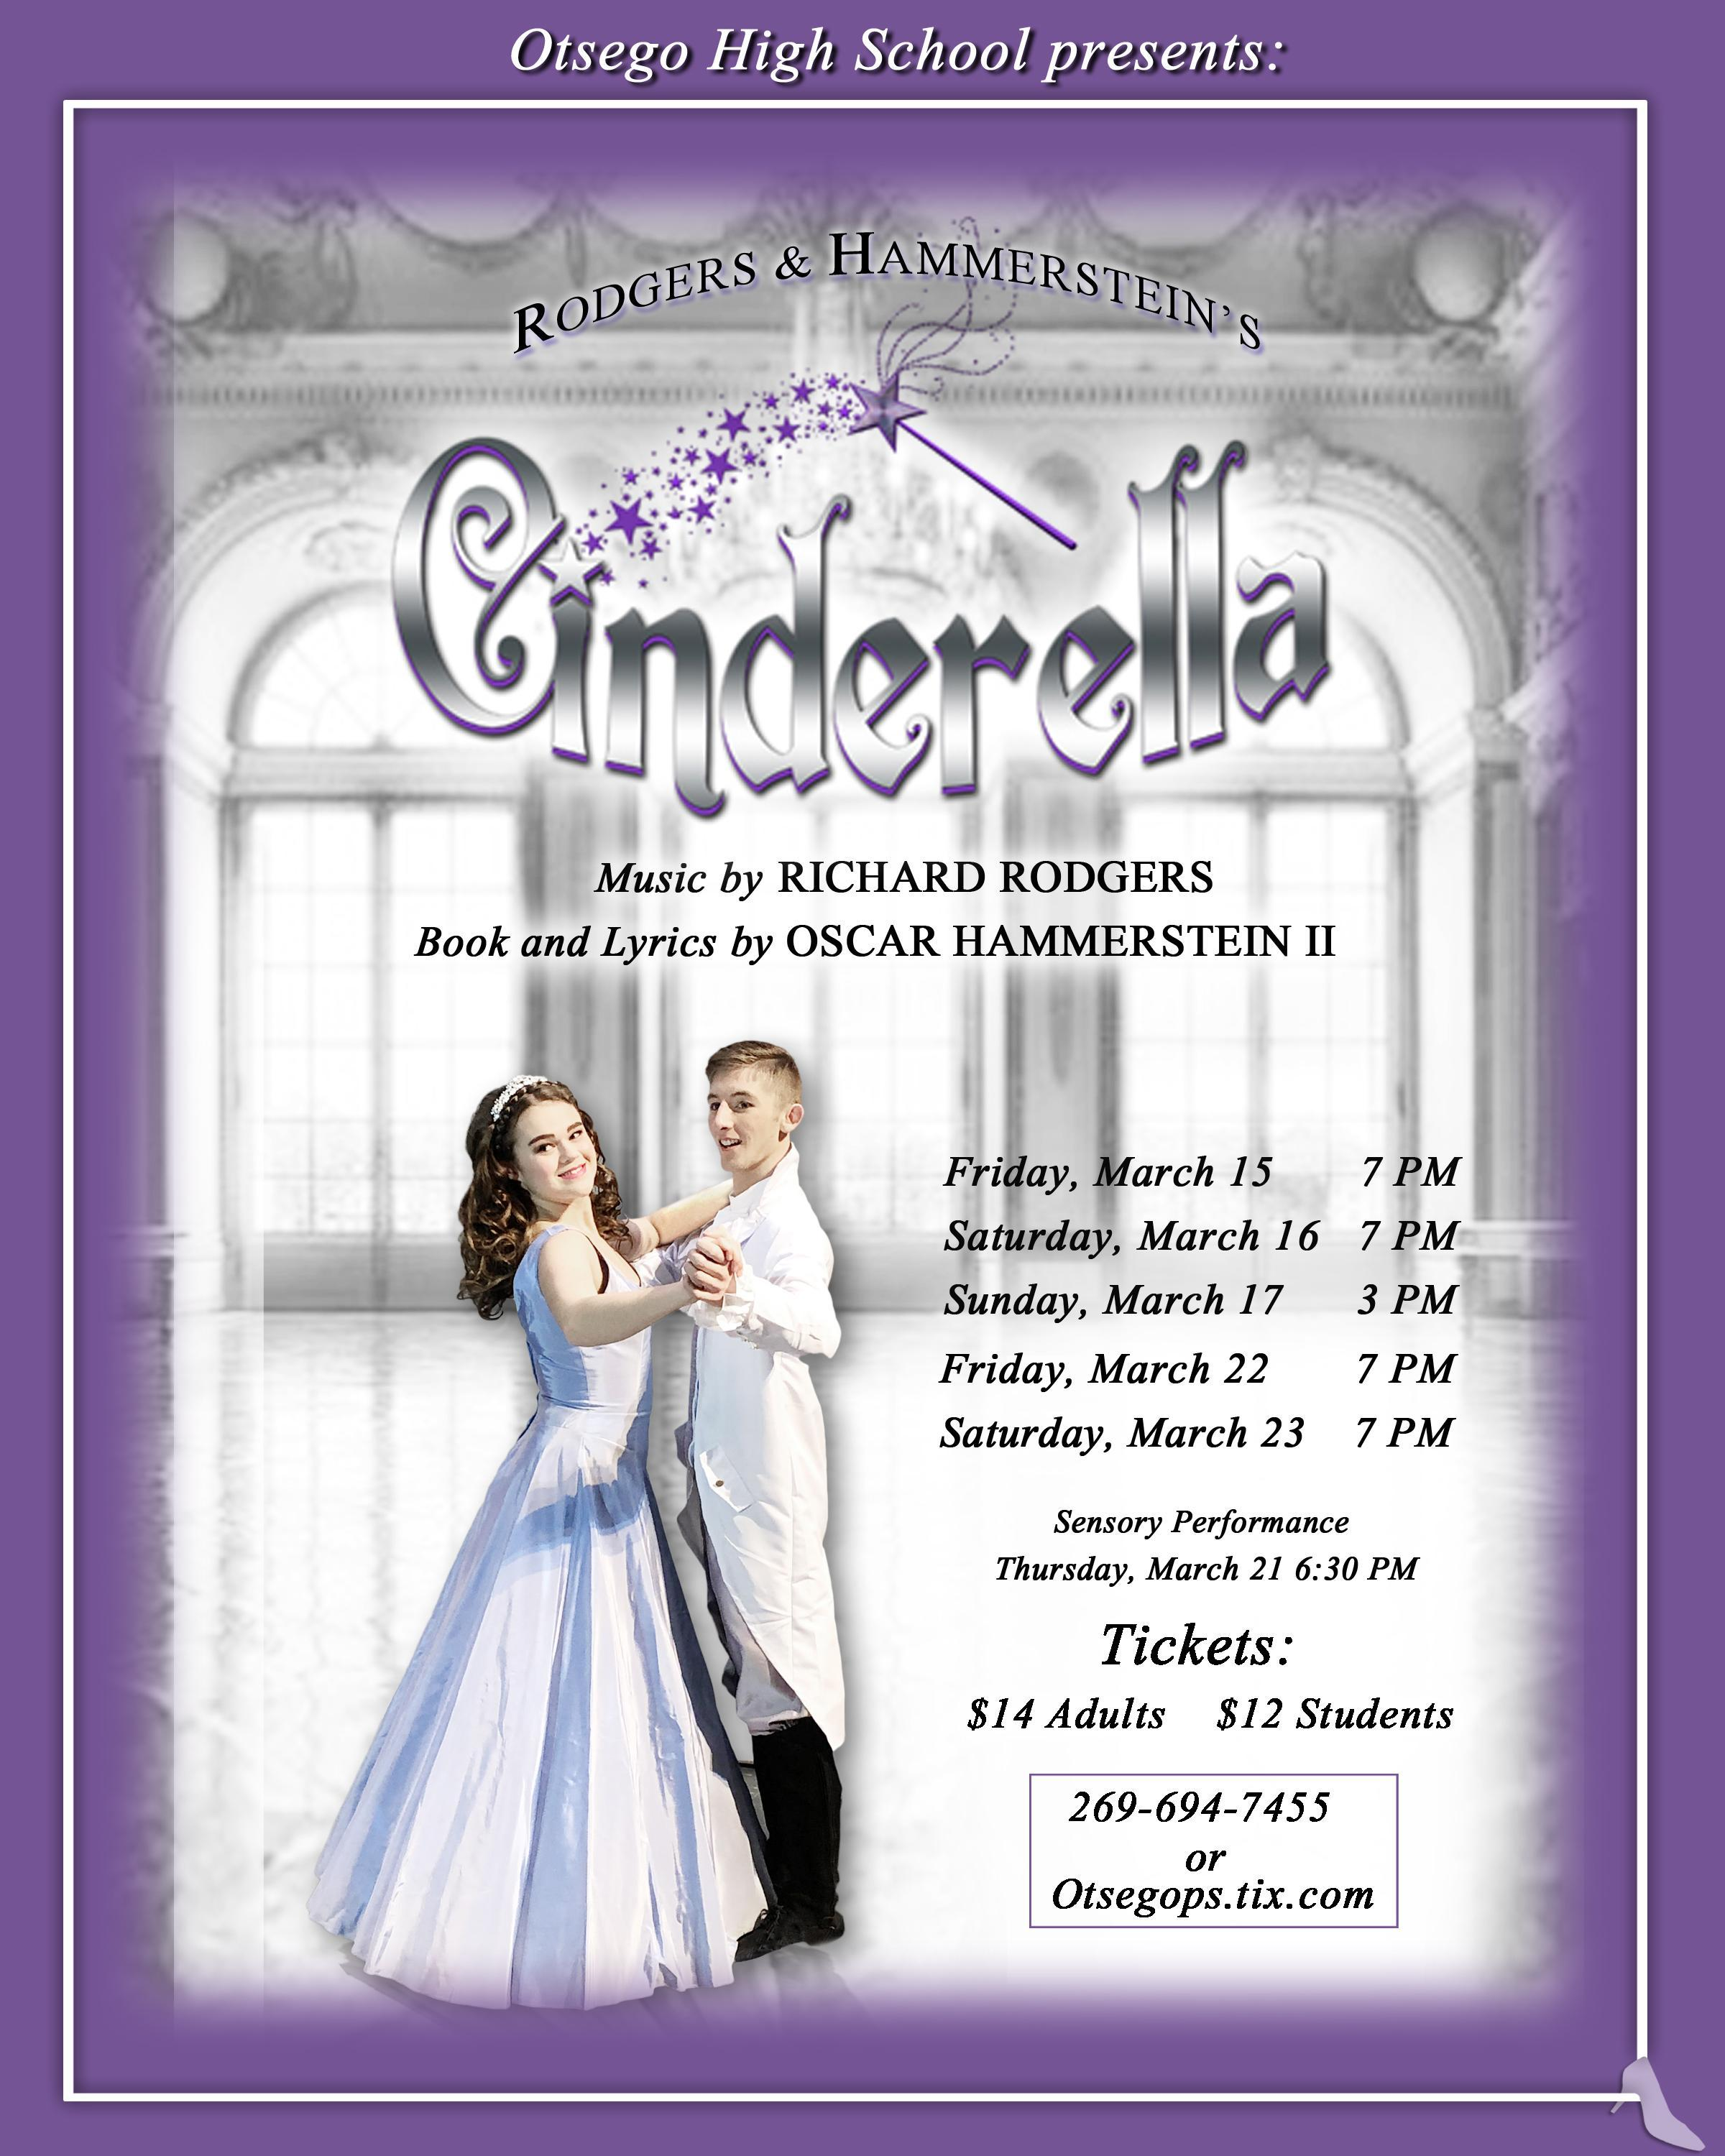 Poster for Cinderella. All text in poster is listed on the page.